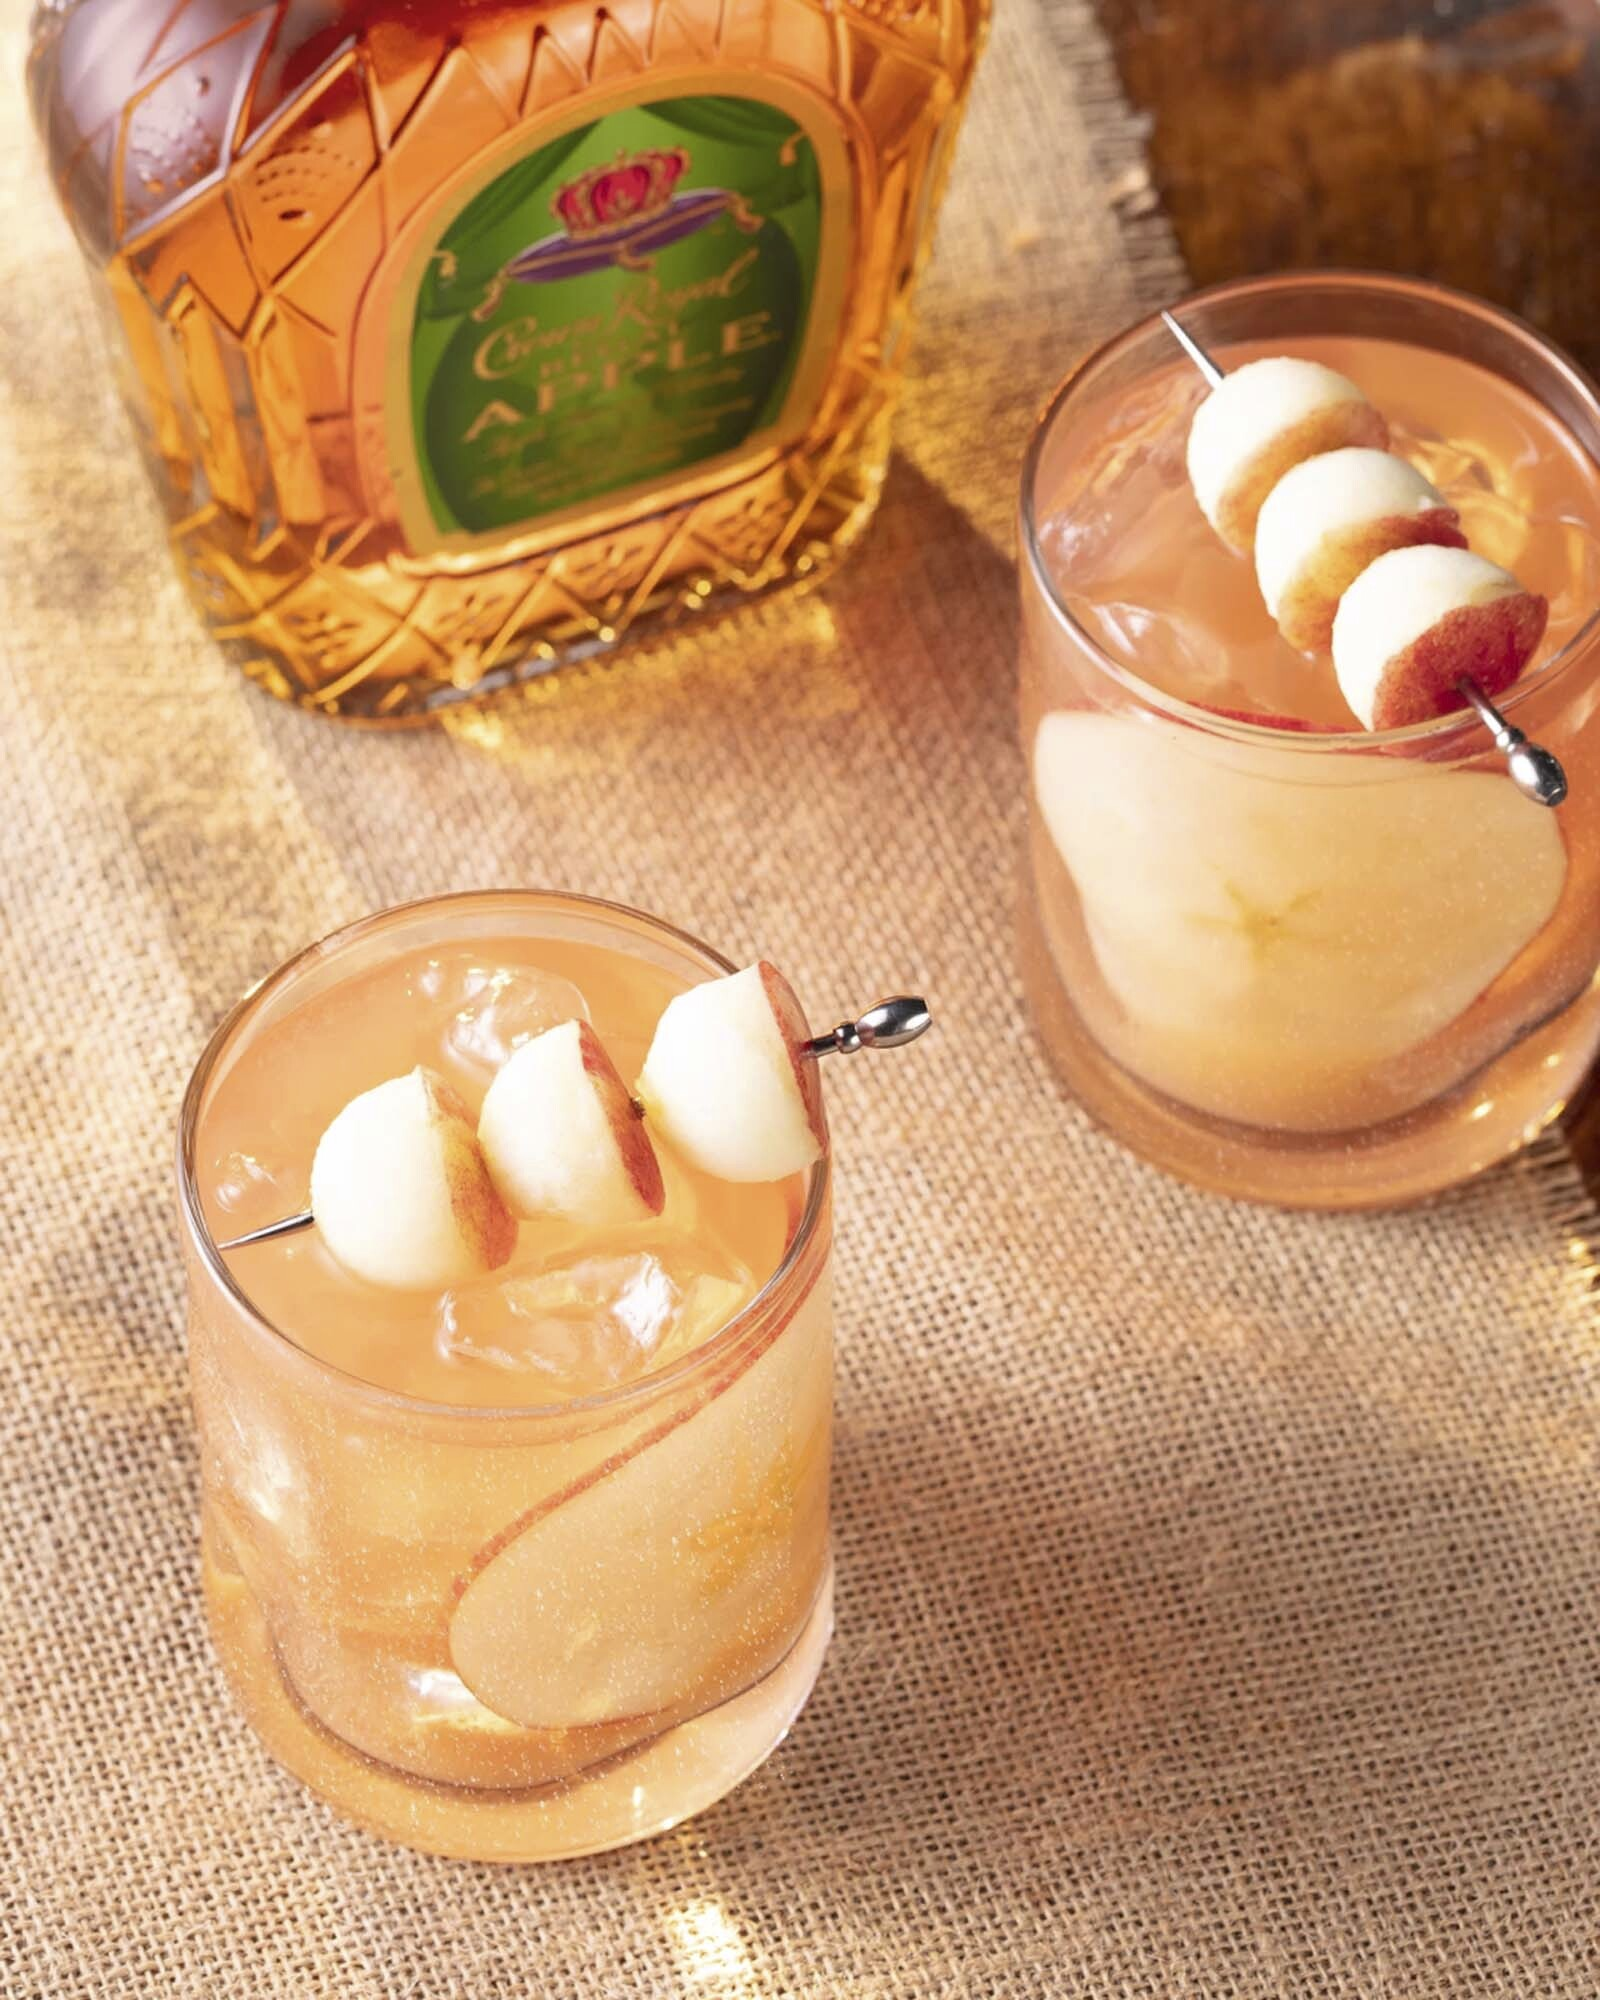 Crown Royal Apple Bomb Whisky Cocktail